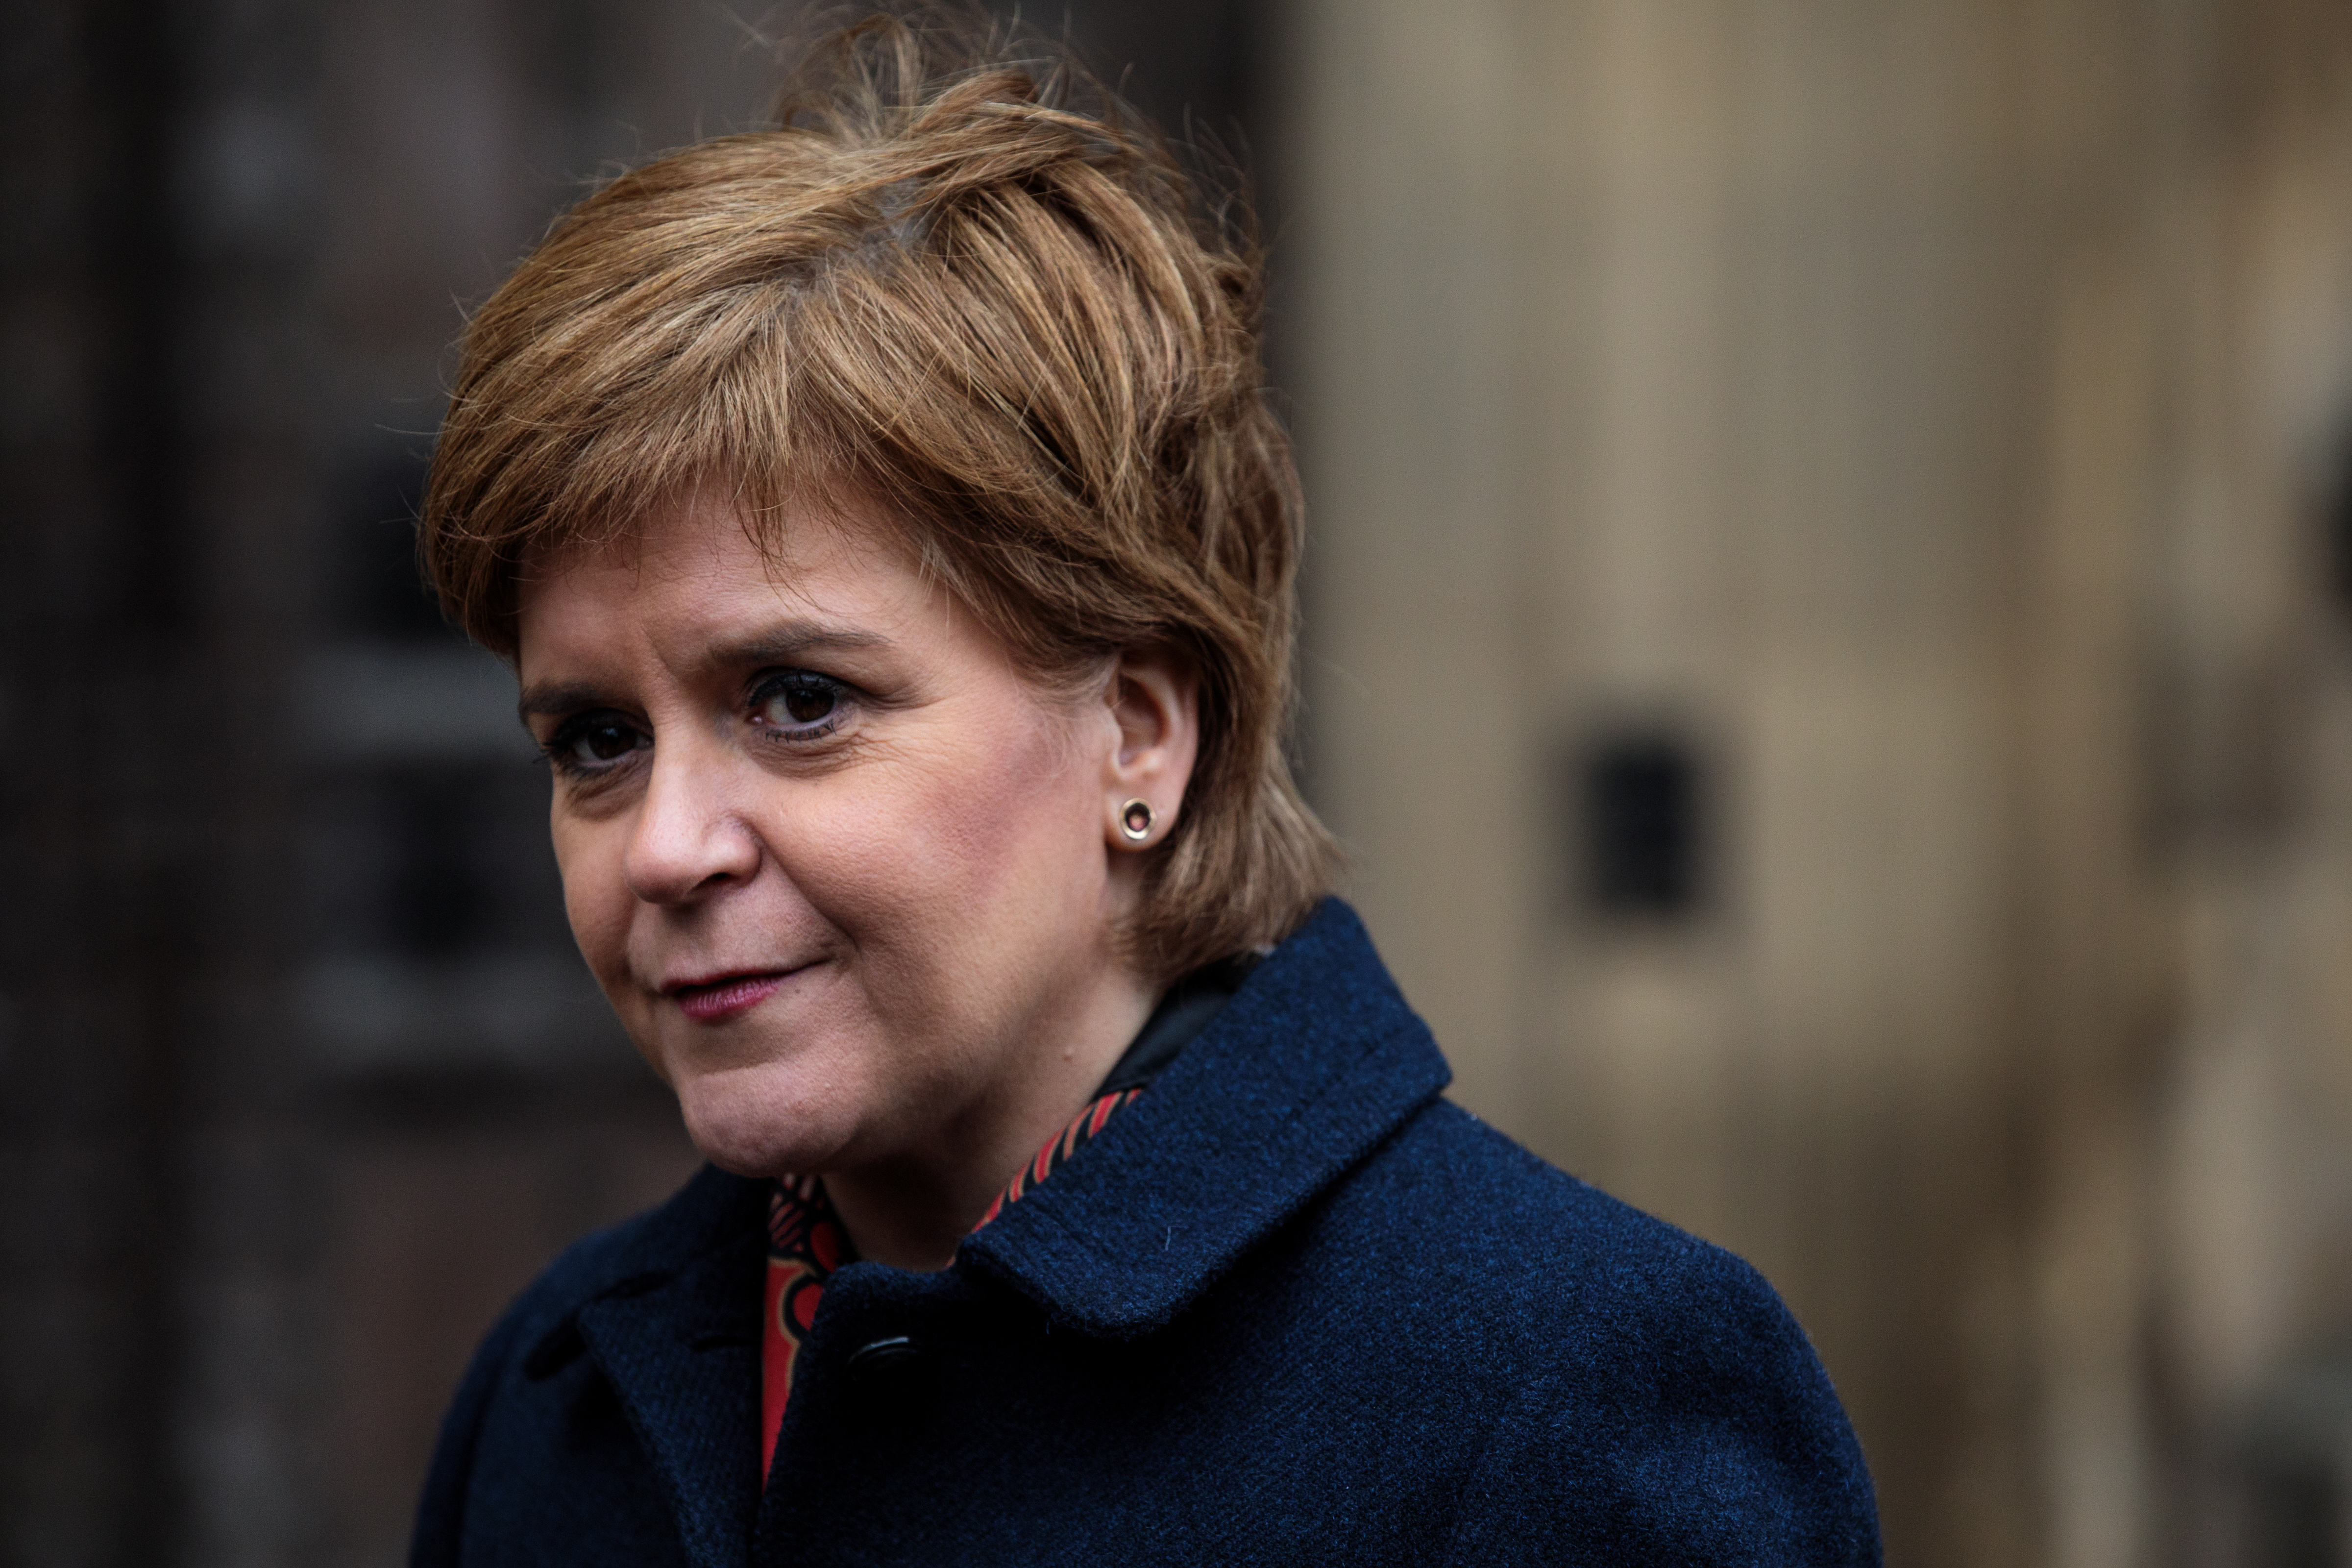 Scottish First Minister Nicola Sturgeon, who has defended transgender rights, speaks to media outside the Houses of Parliament on January 16, 2019 in London, England.